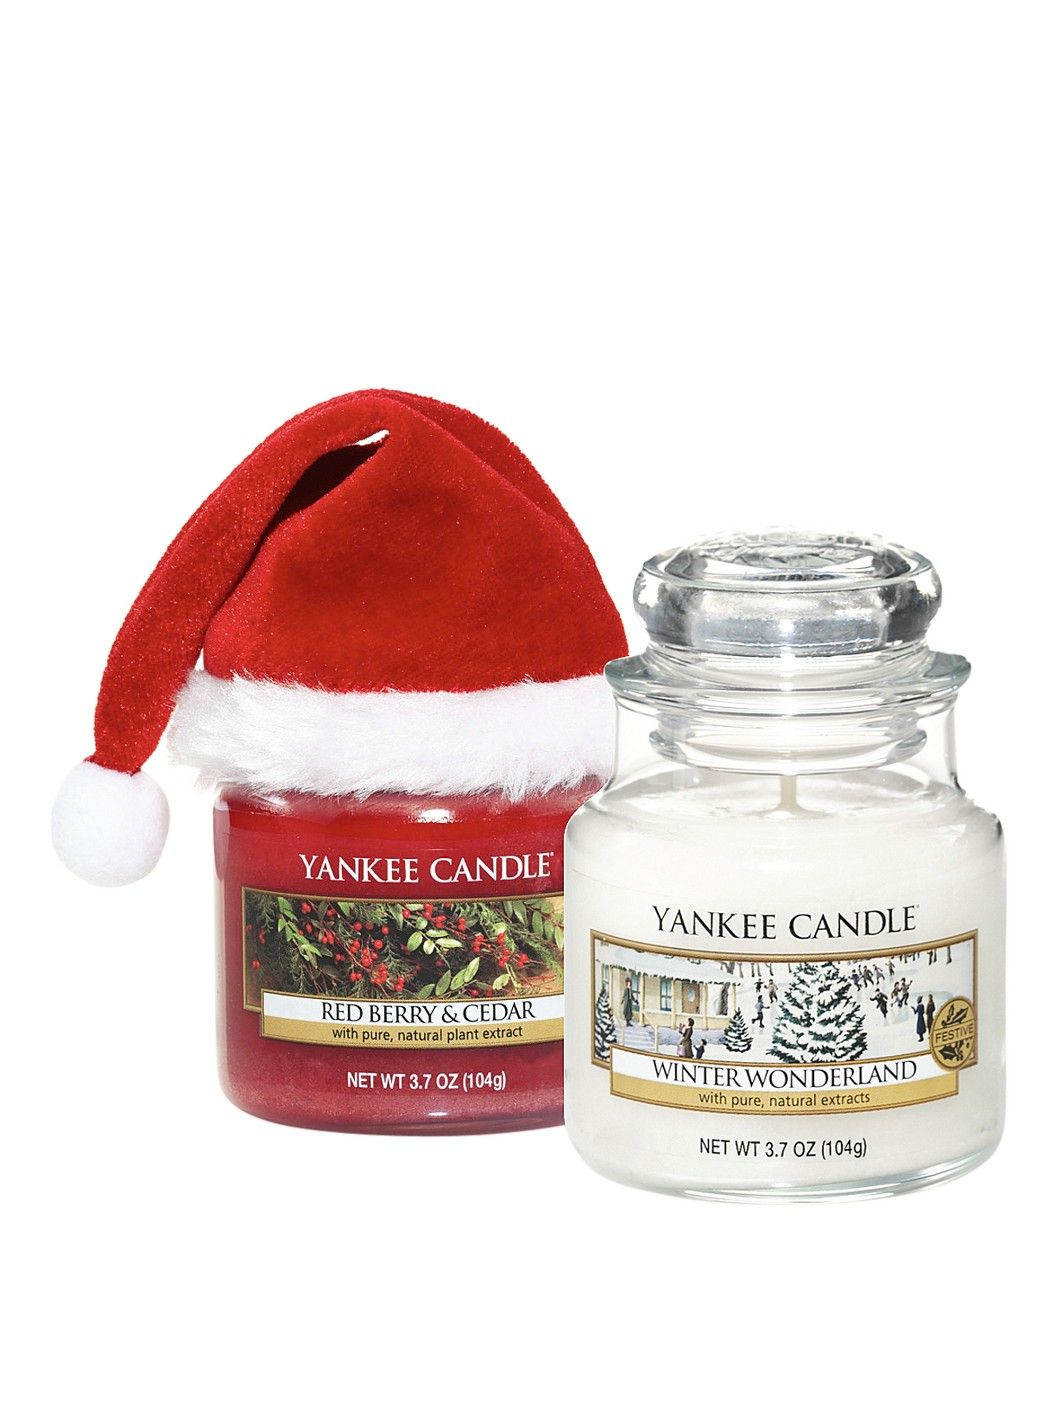 Yankee candle winter wonderland candles very christmas